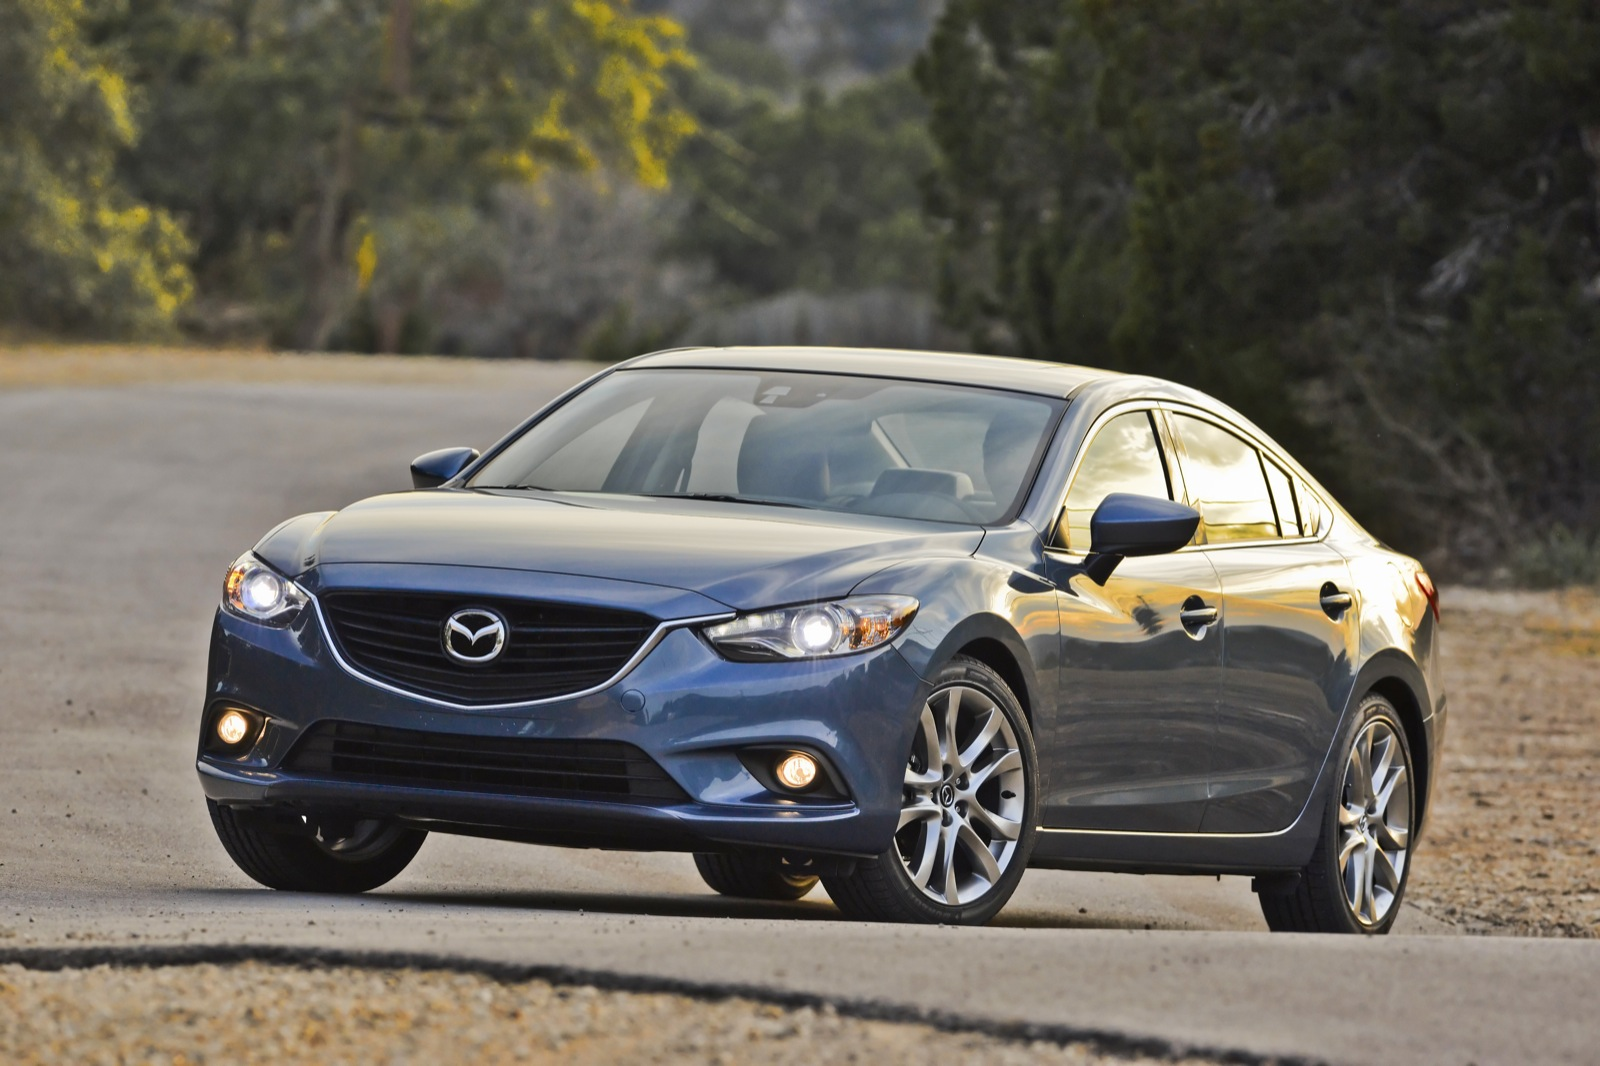 2014 mazda 6 advanced package how much better mpg with i eloop. Black Bedroom Furniture Sets. Home Design Ideas